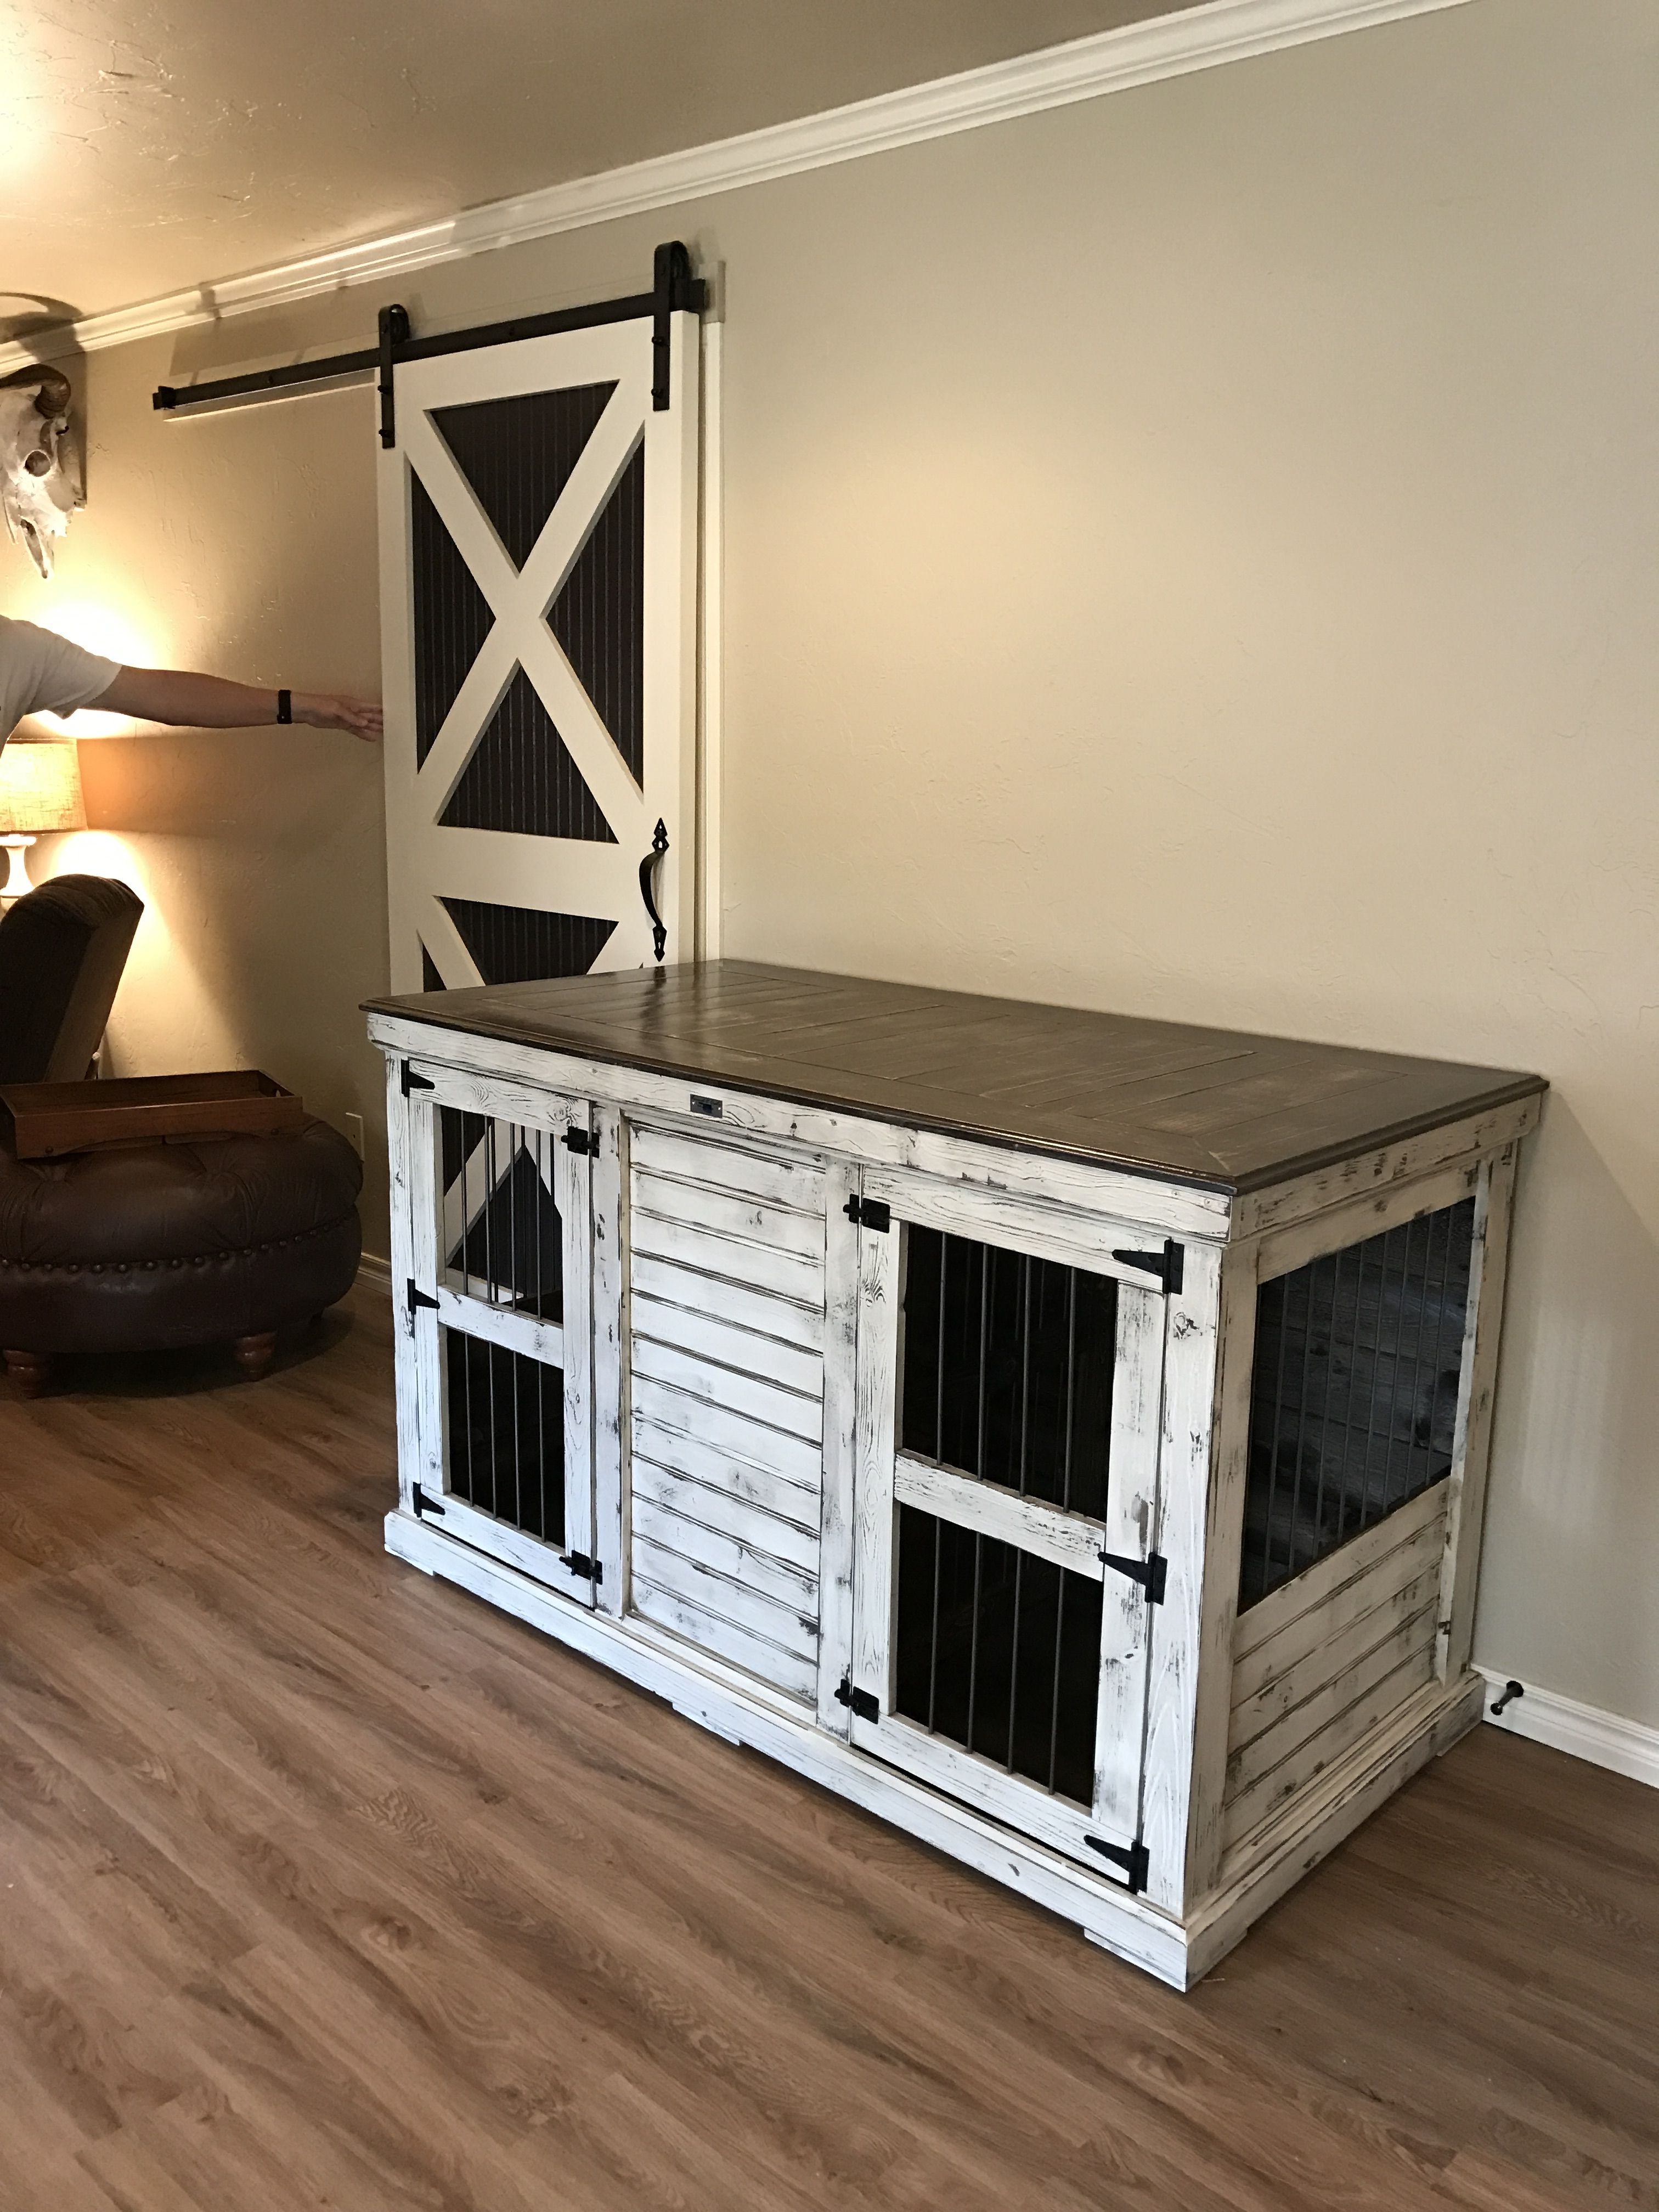 Urban farmhouse designed indoor double dog kennel features sherwin williams antique white distressed paint